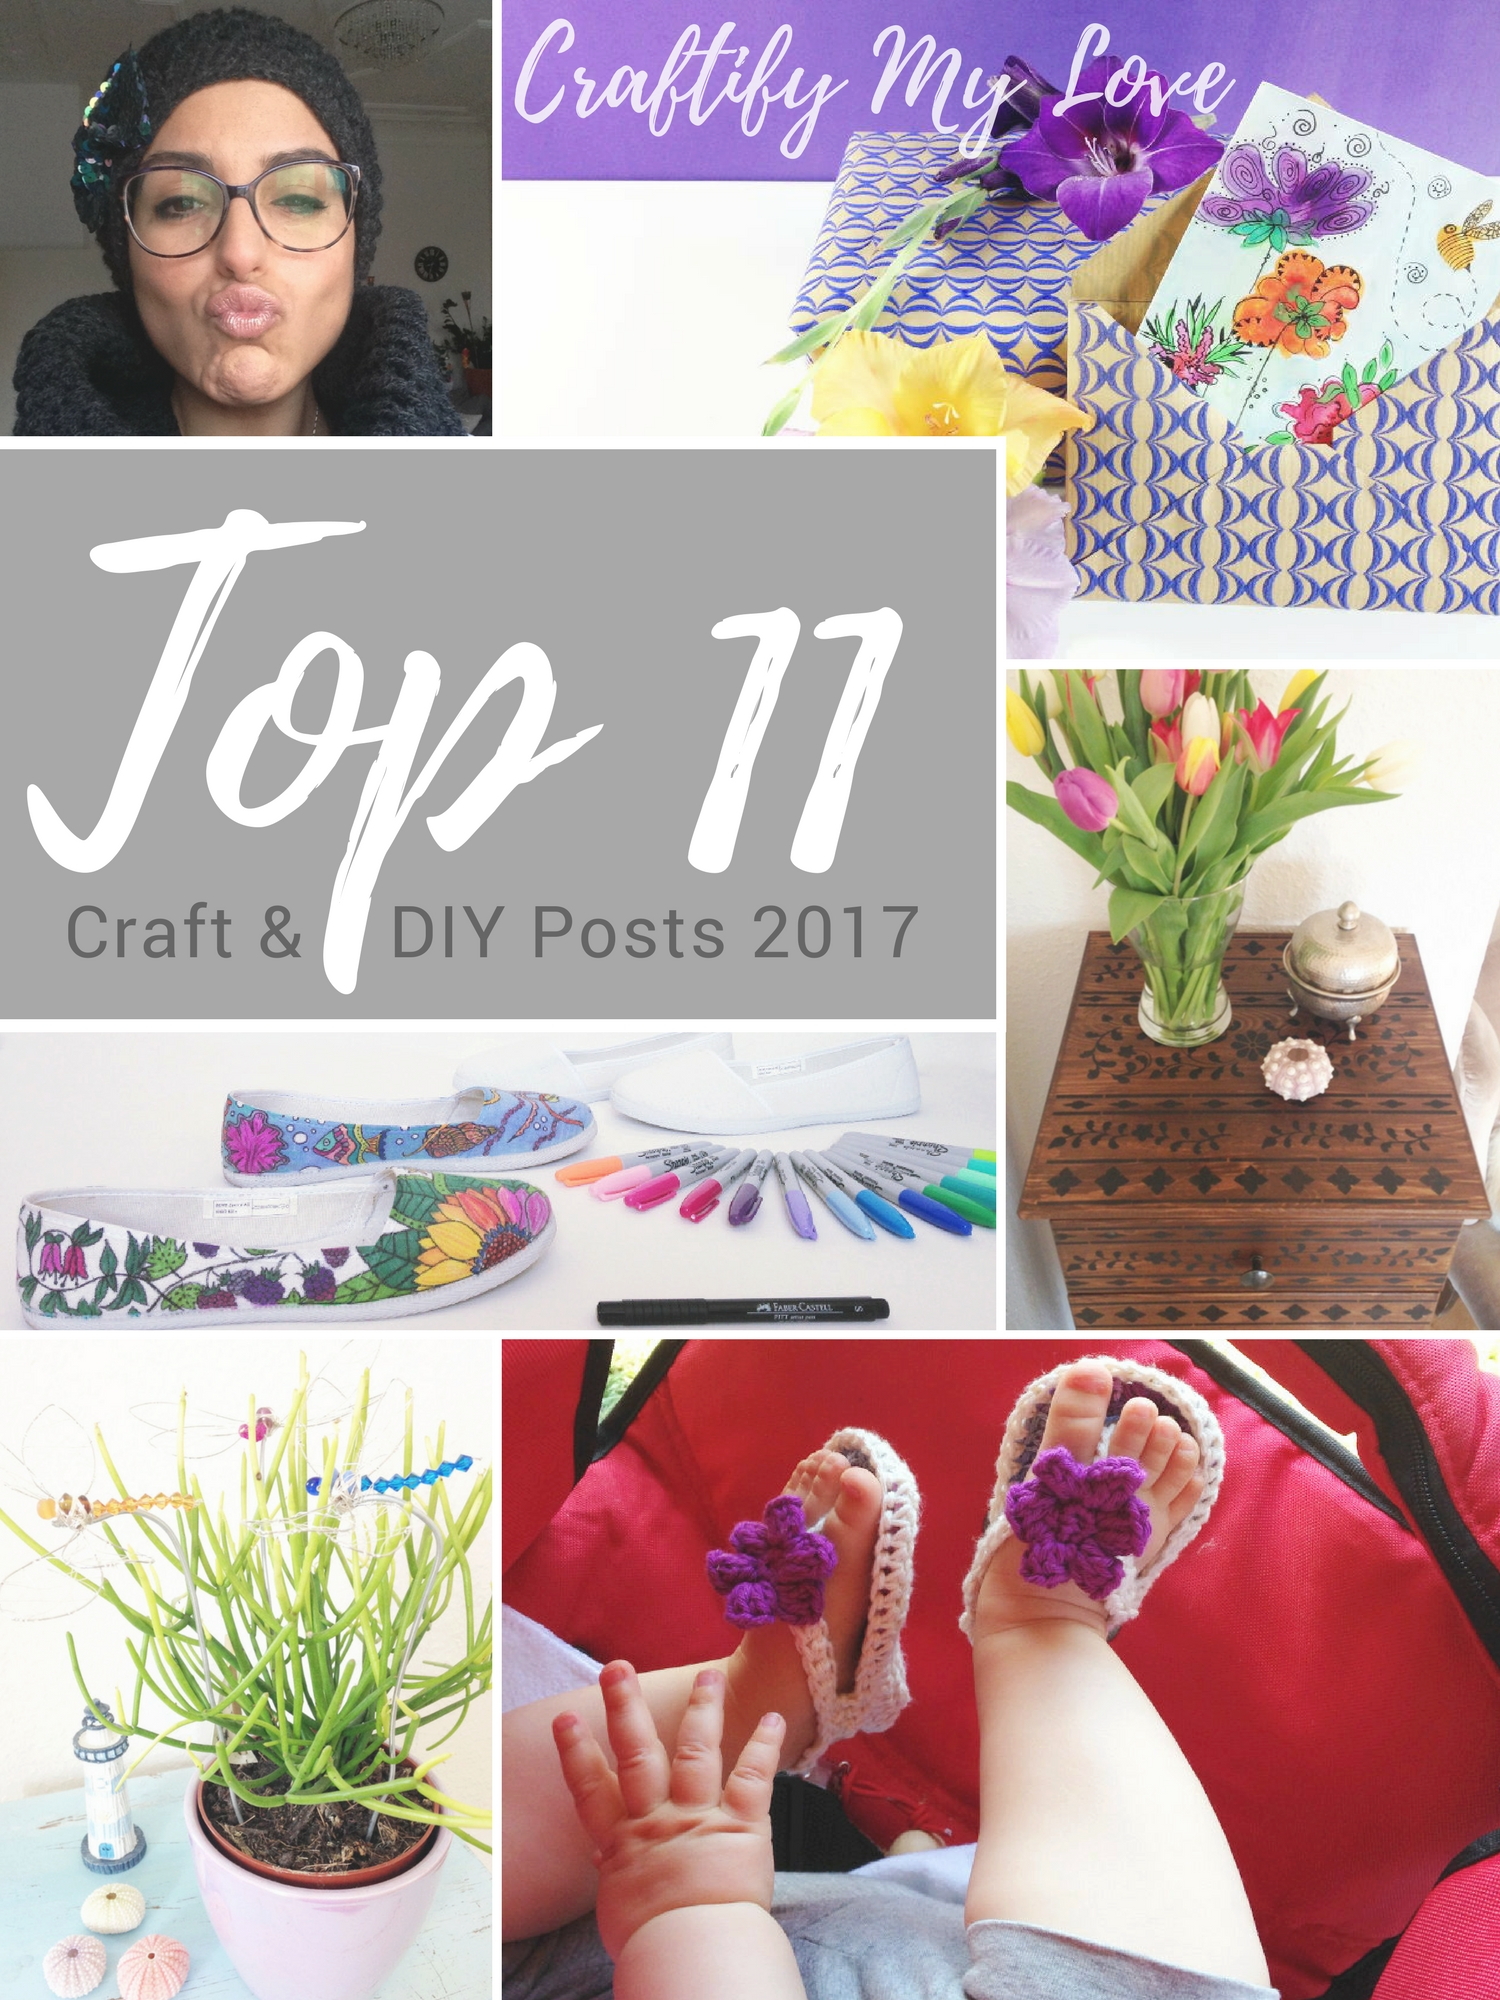 Top 11 craft and diy posts 2017. Click for a collection of easy tutorials and fun crafty projects. | #topposts2017 #topposts #top10 #topcraftprojects #bestof2017 #papercrafts #crocheting #IKEAhacks #sharpieart #homedecor